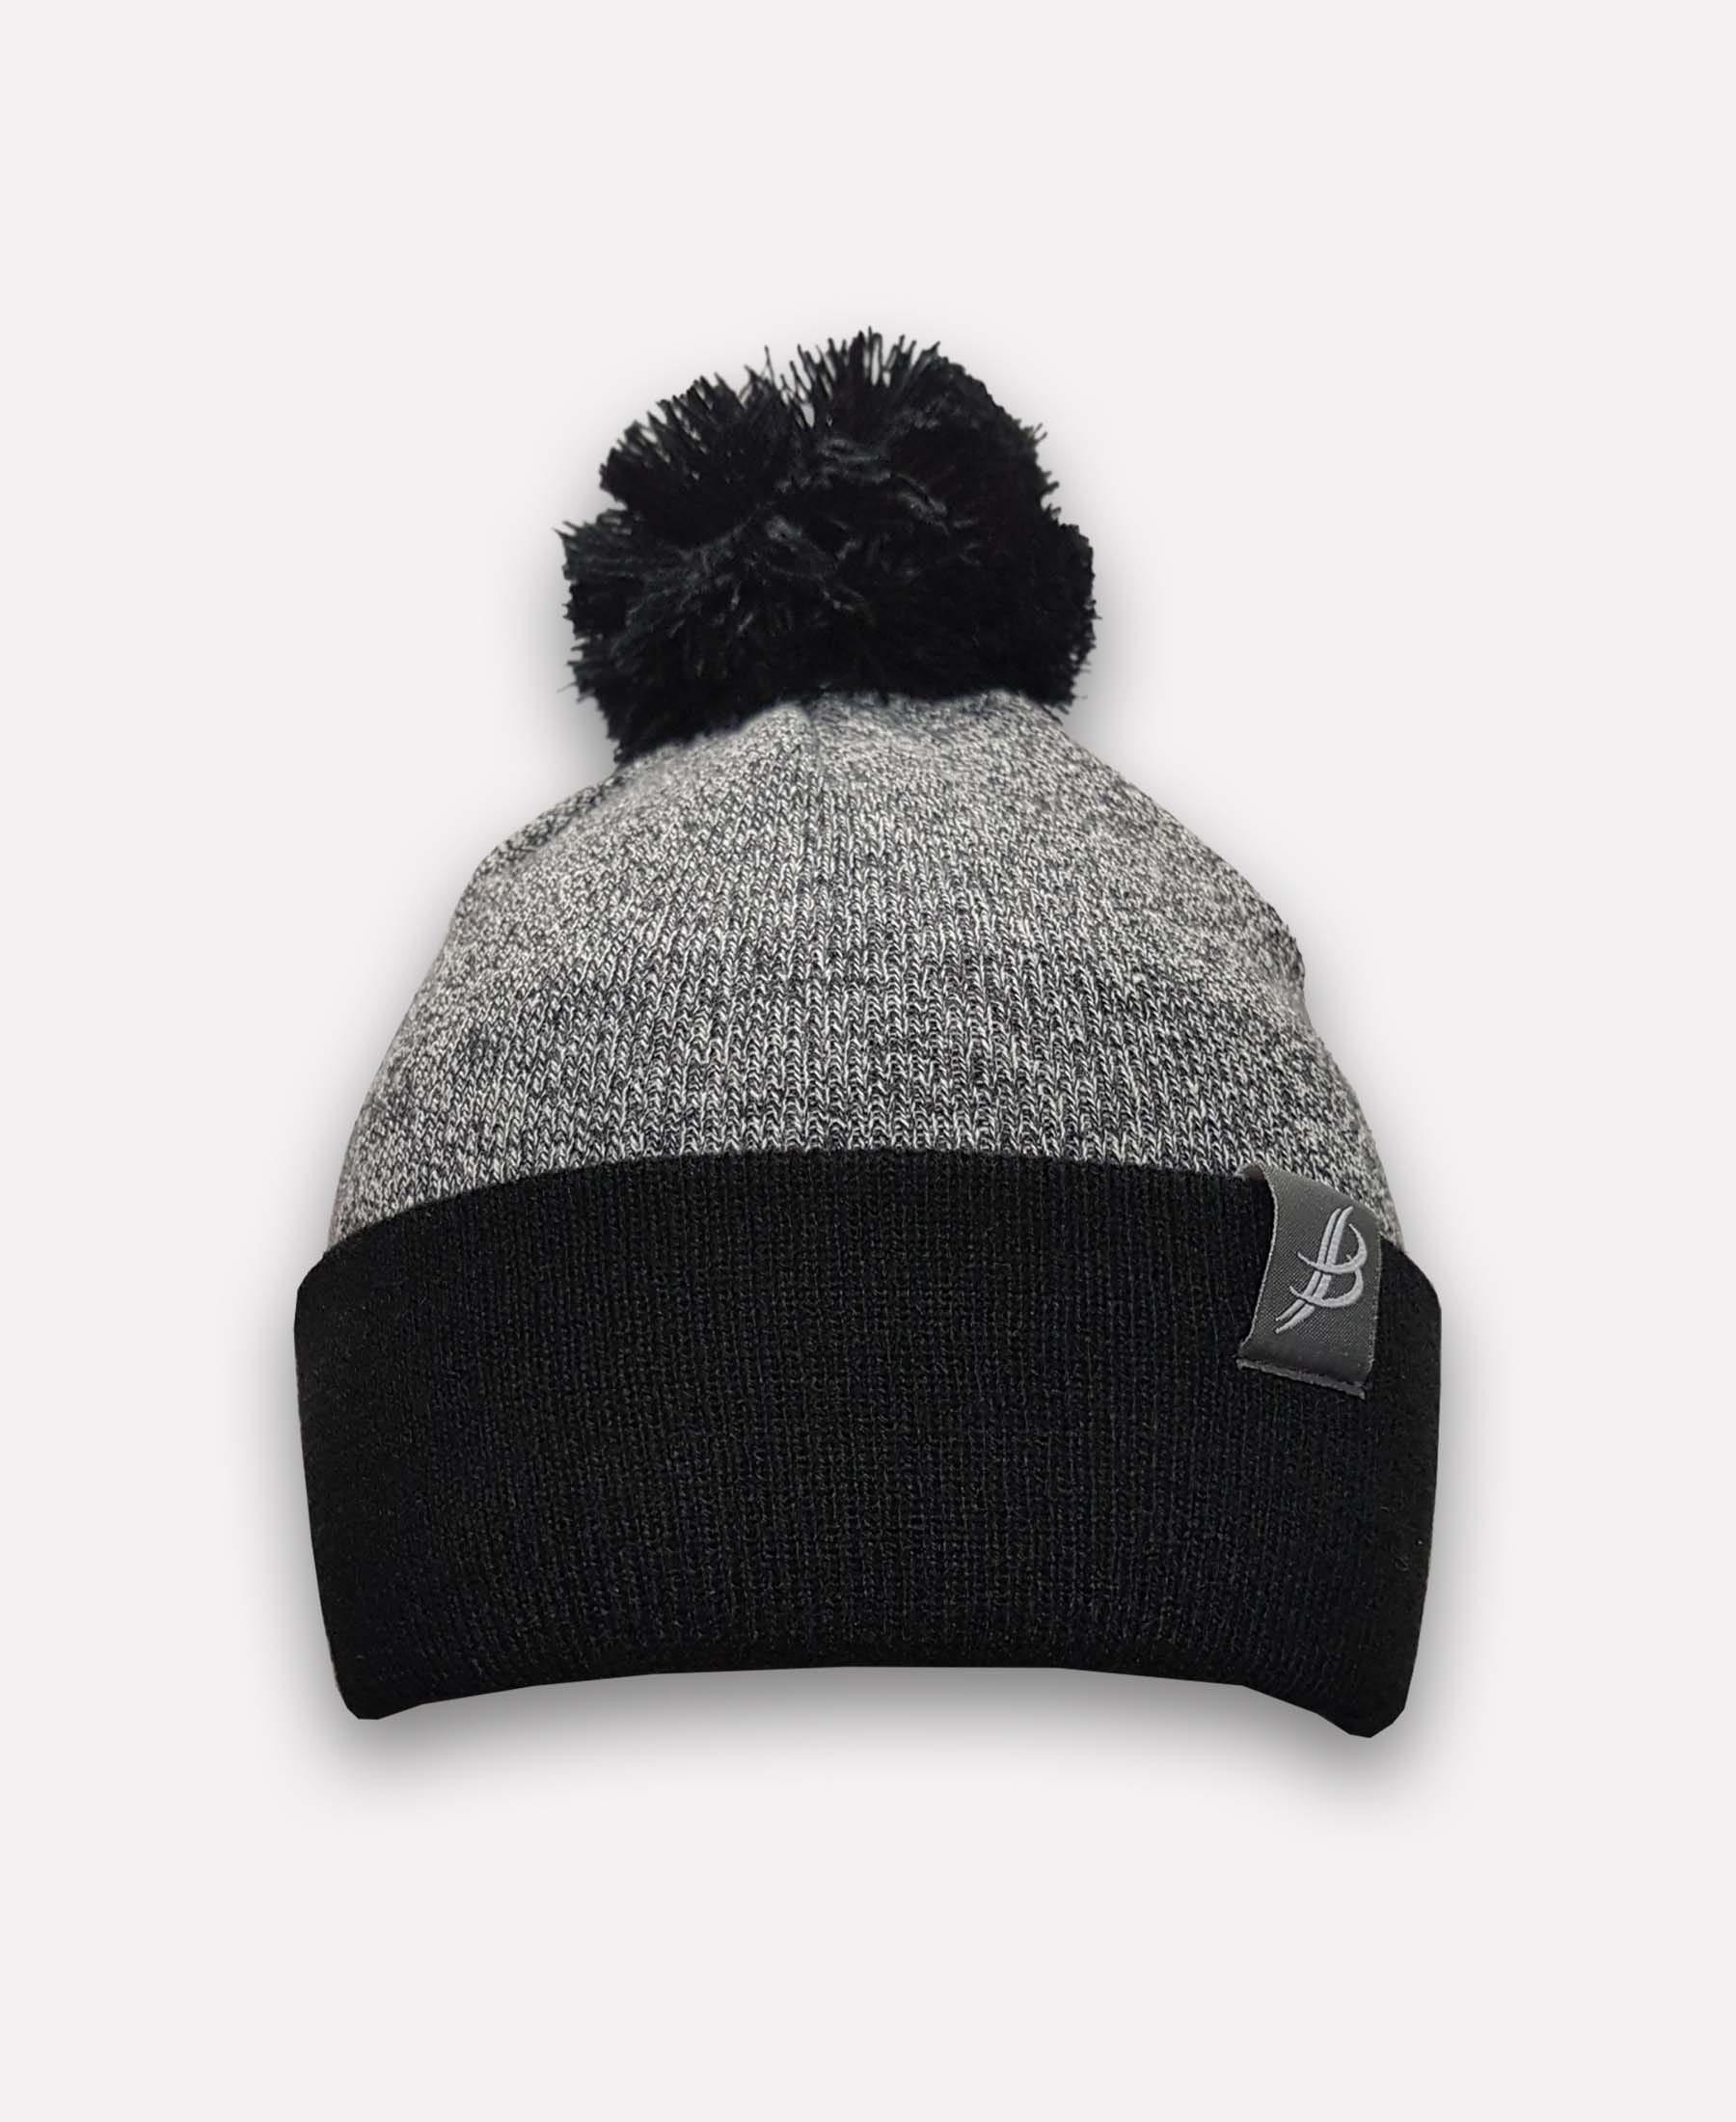 Storm Bobble Hat